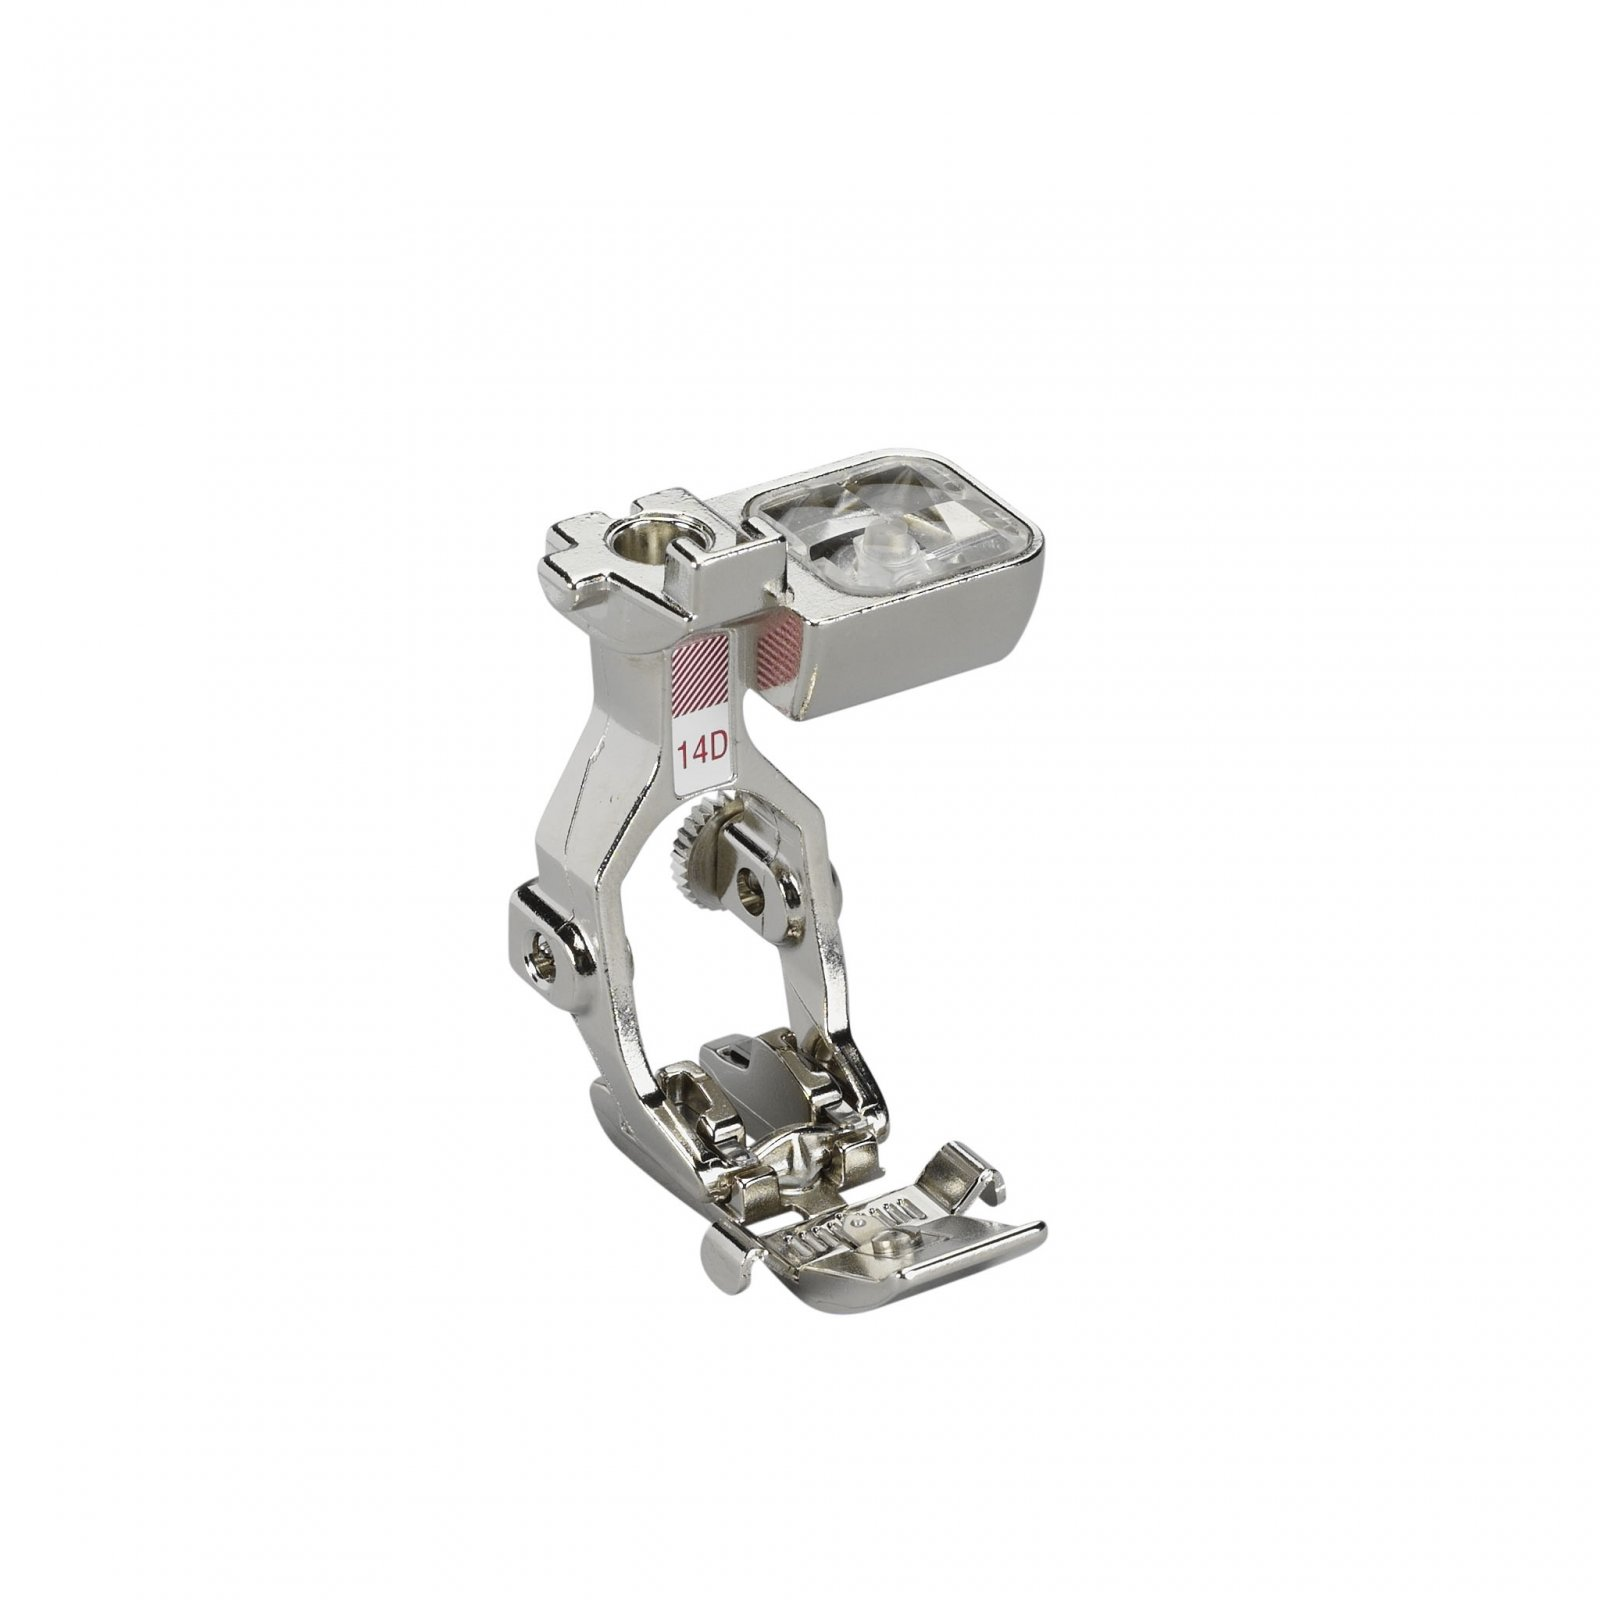 #14D Zipper Foot with Guide